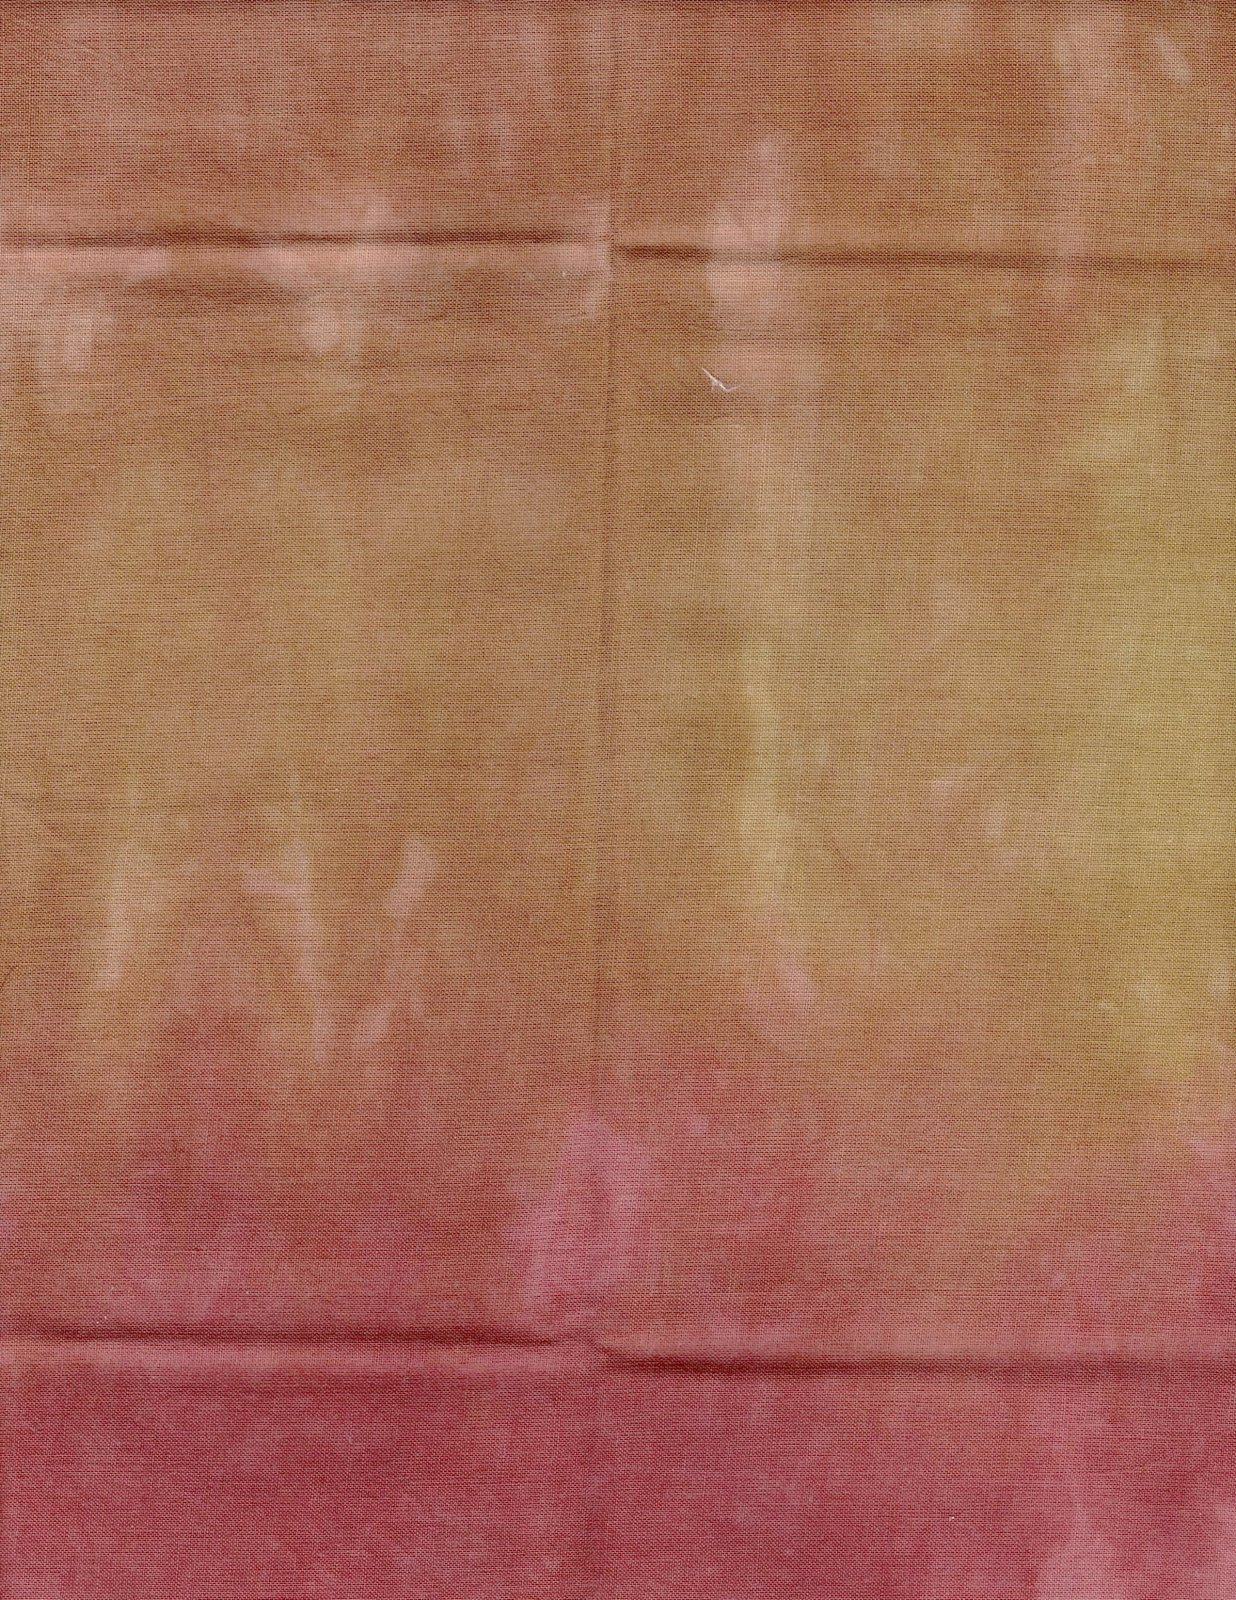 Tuscan Sunset Hand-Dyed Organdy FQ